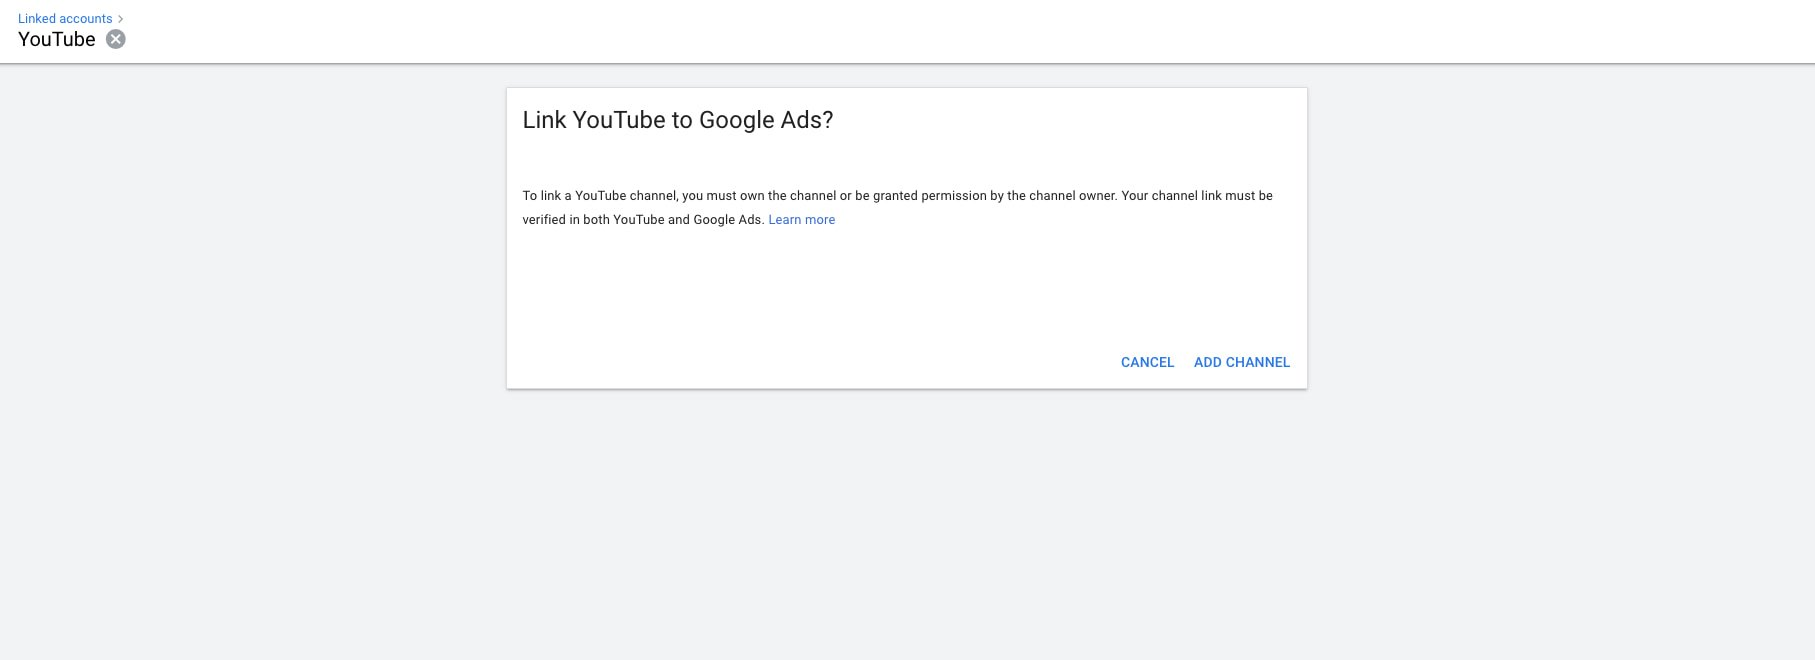 Linking YouTube channel to Google Ads